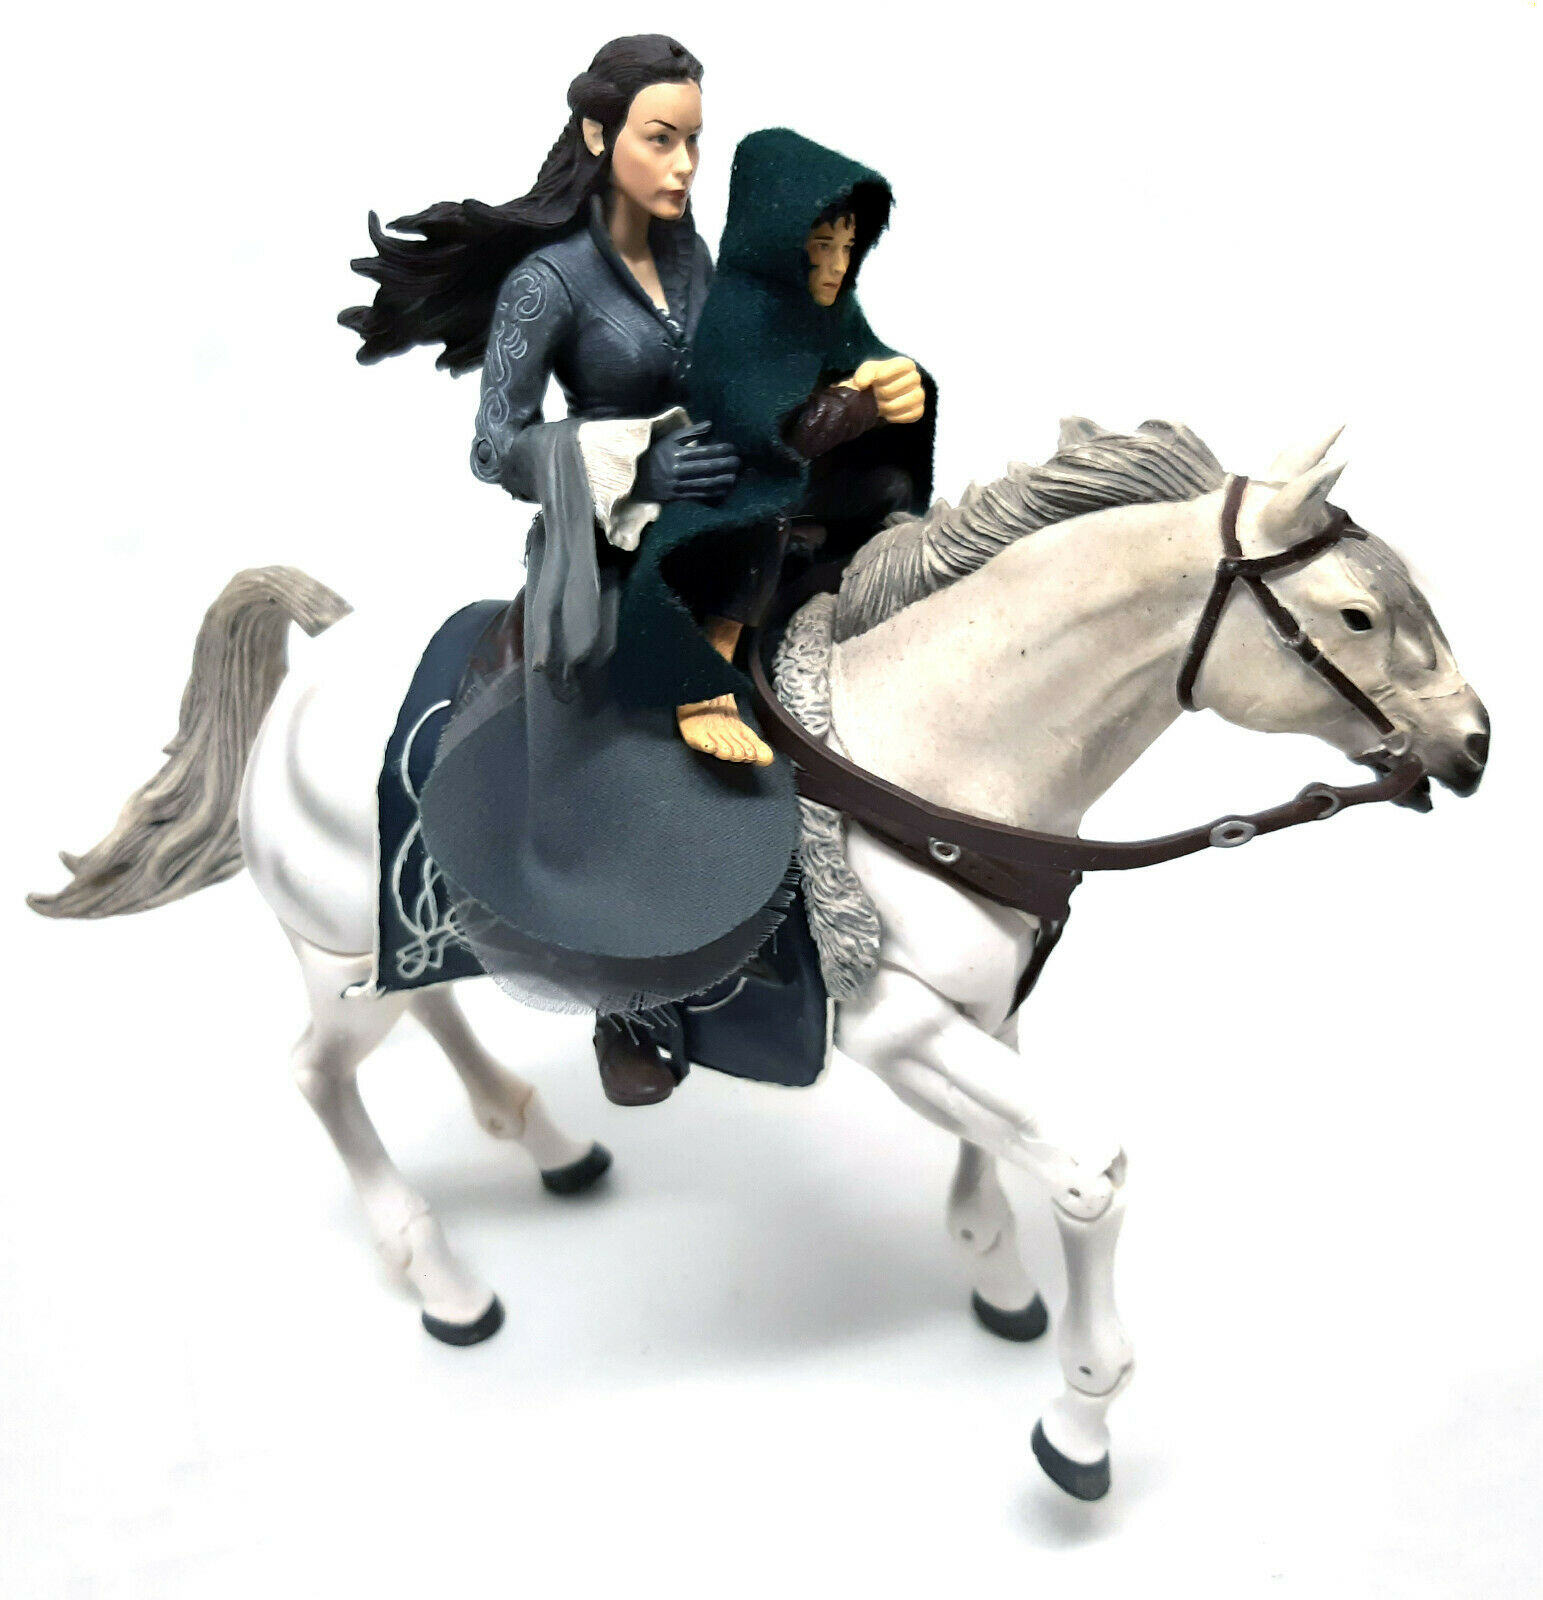 Tolkien Lord of the Rings 6  ARWEN ON ASFALOTH HORSE + frodo toy action figures